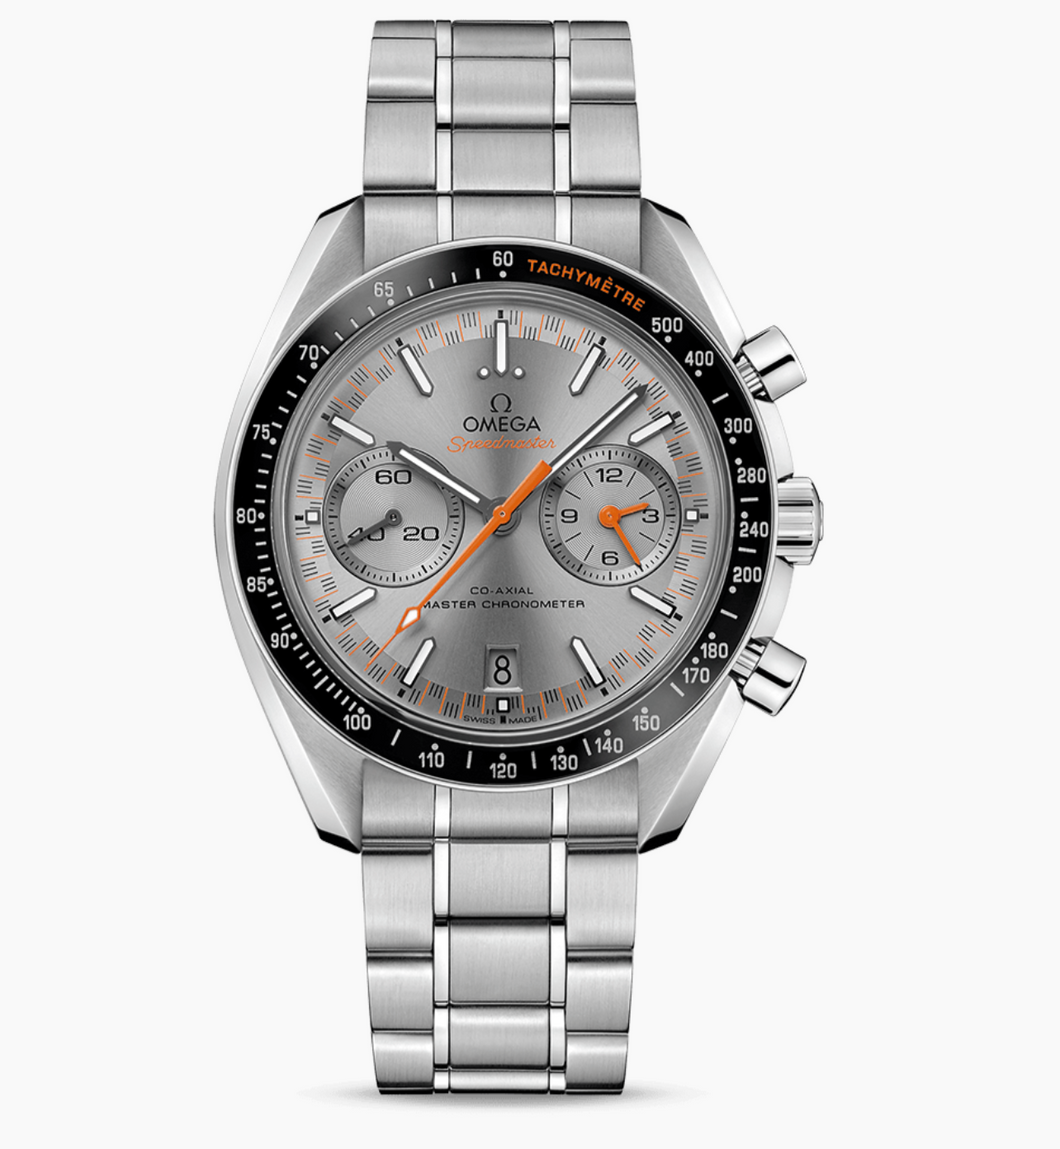 Omega RACING CO-AXIAL MASTER CHRONOMETER CHRONOGRAPH 44.25 MM 329.30.44.51.06.001